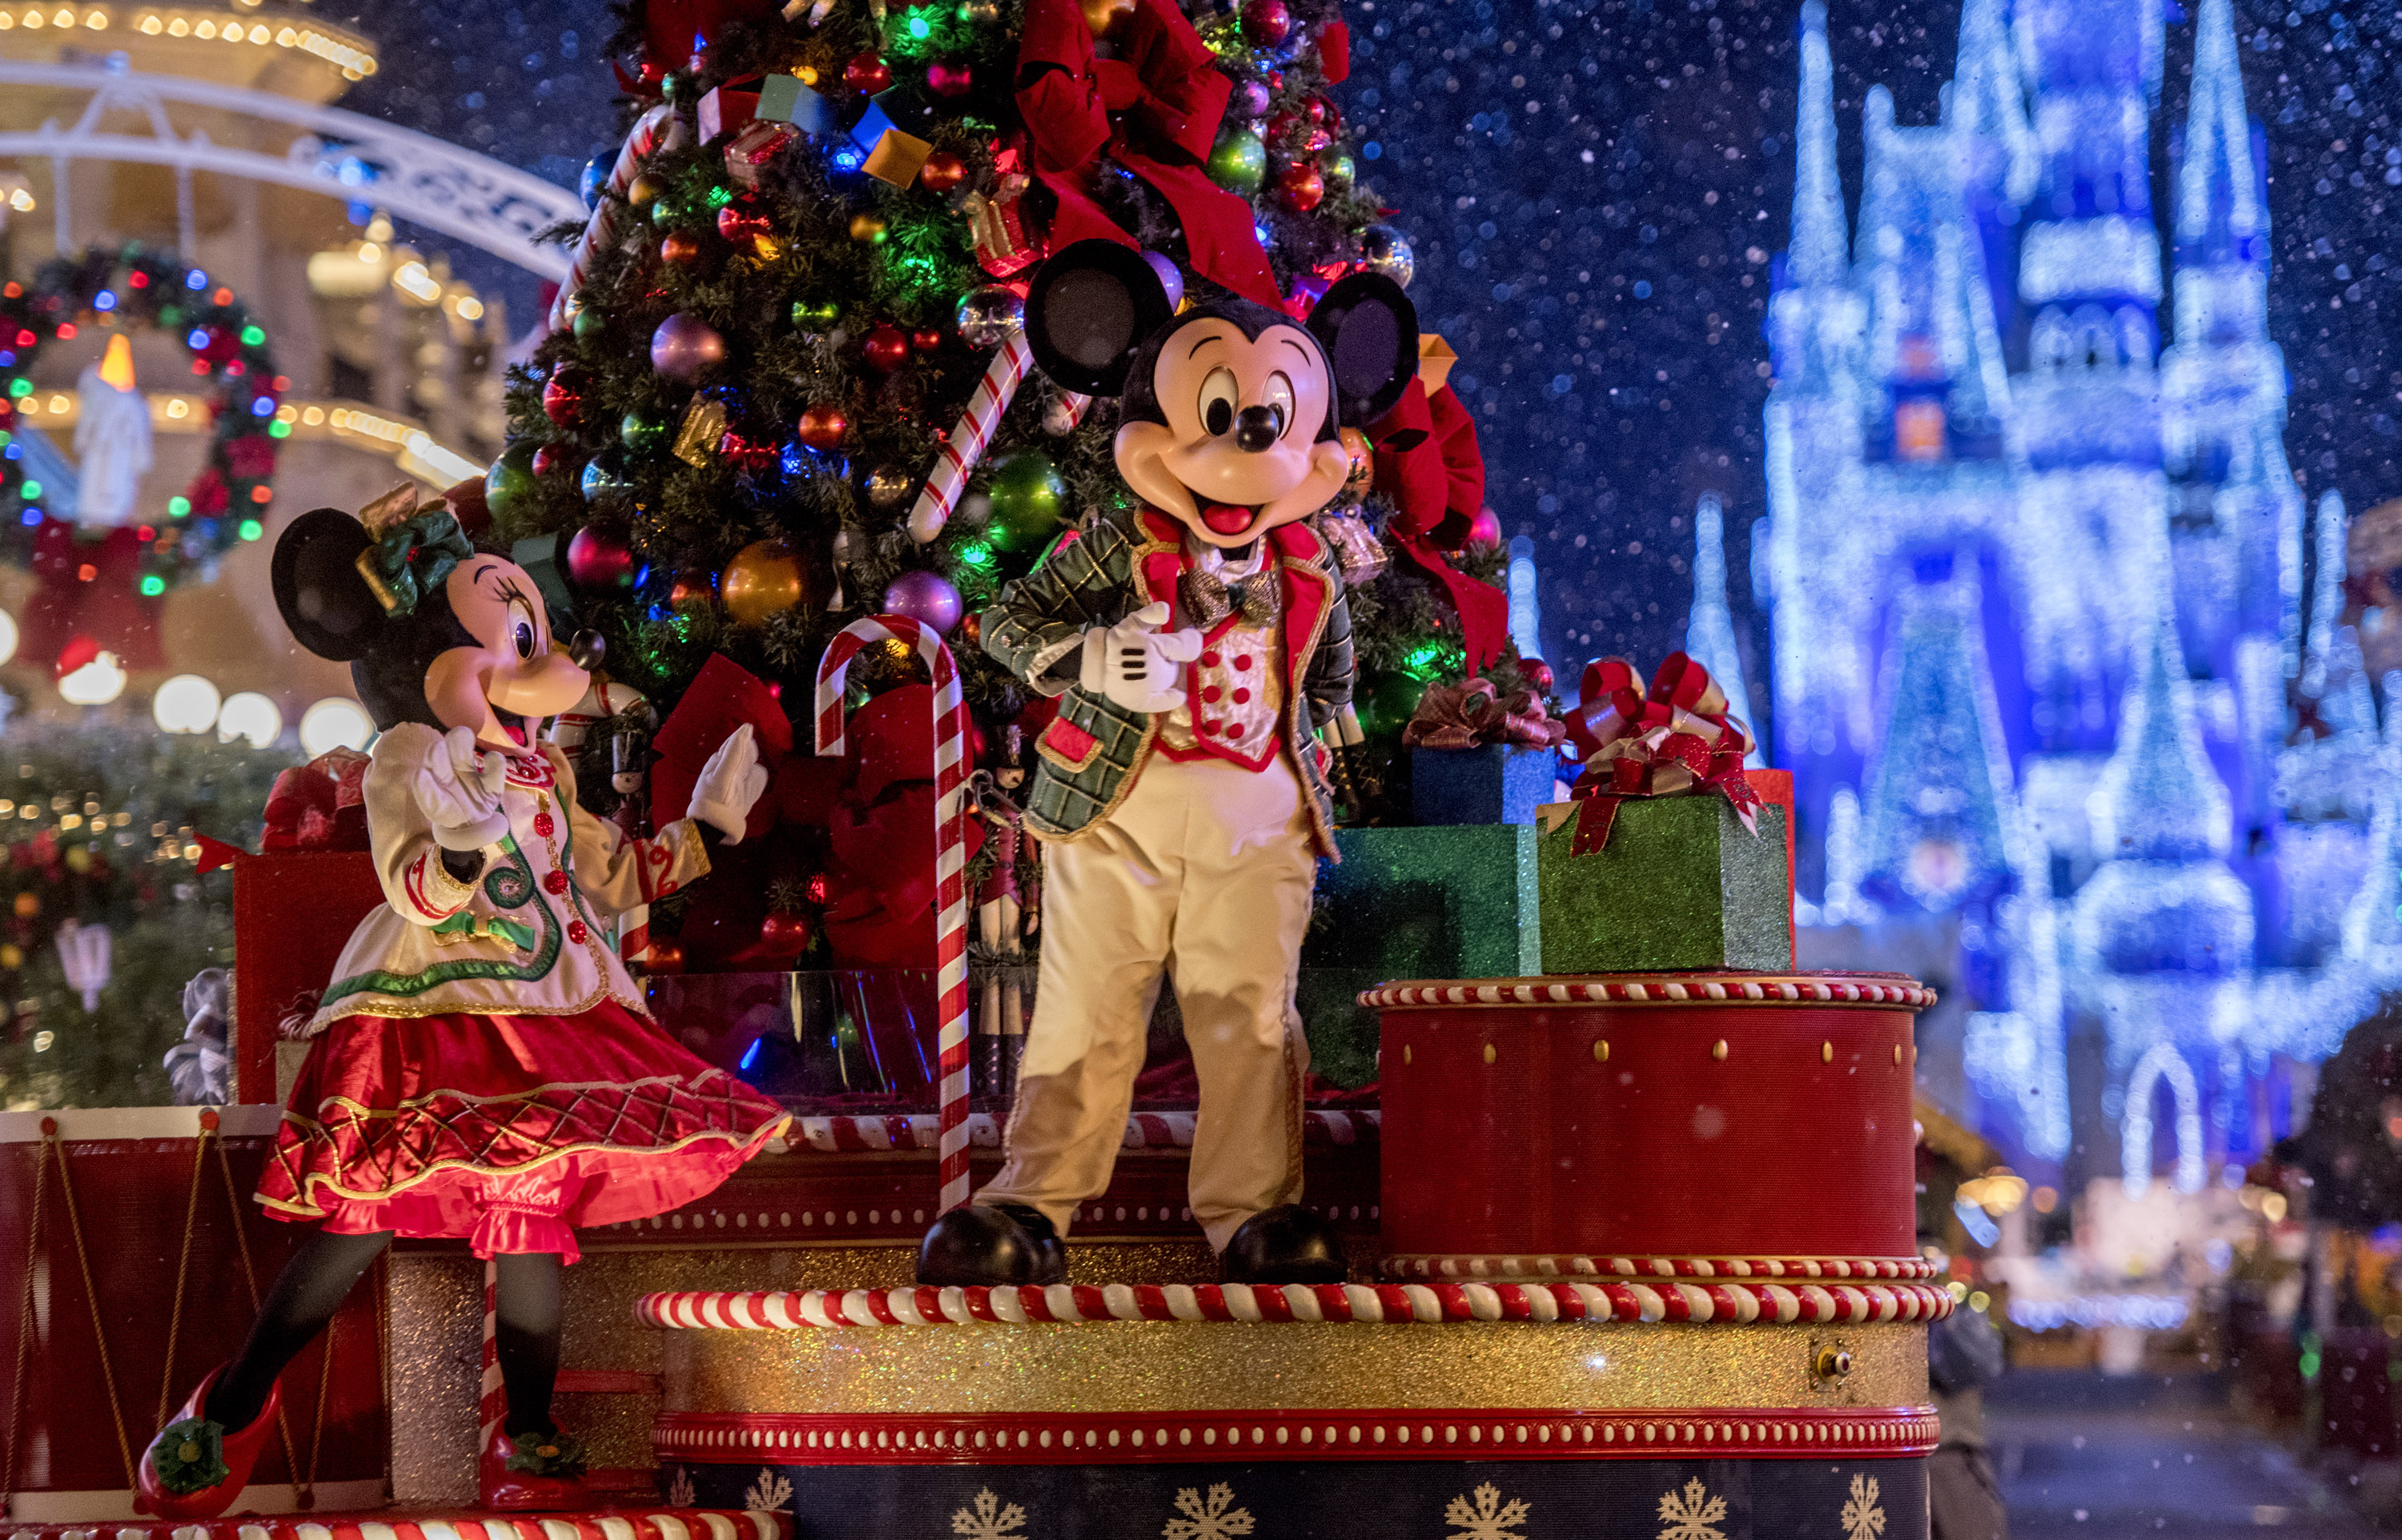 Celebrate the Holiday Season at Walt Disney World Resort with the Ultimate Disney Christmastime Package